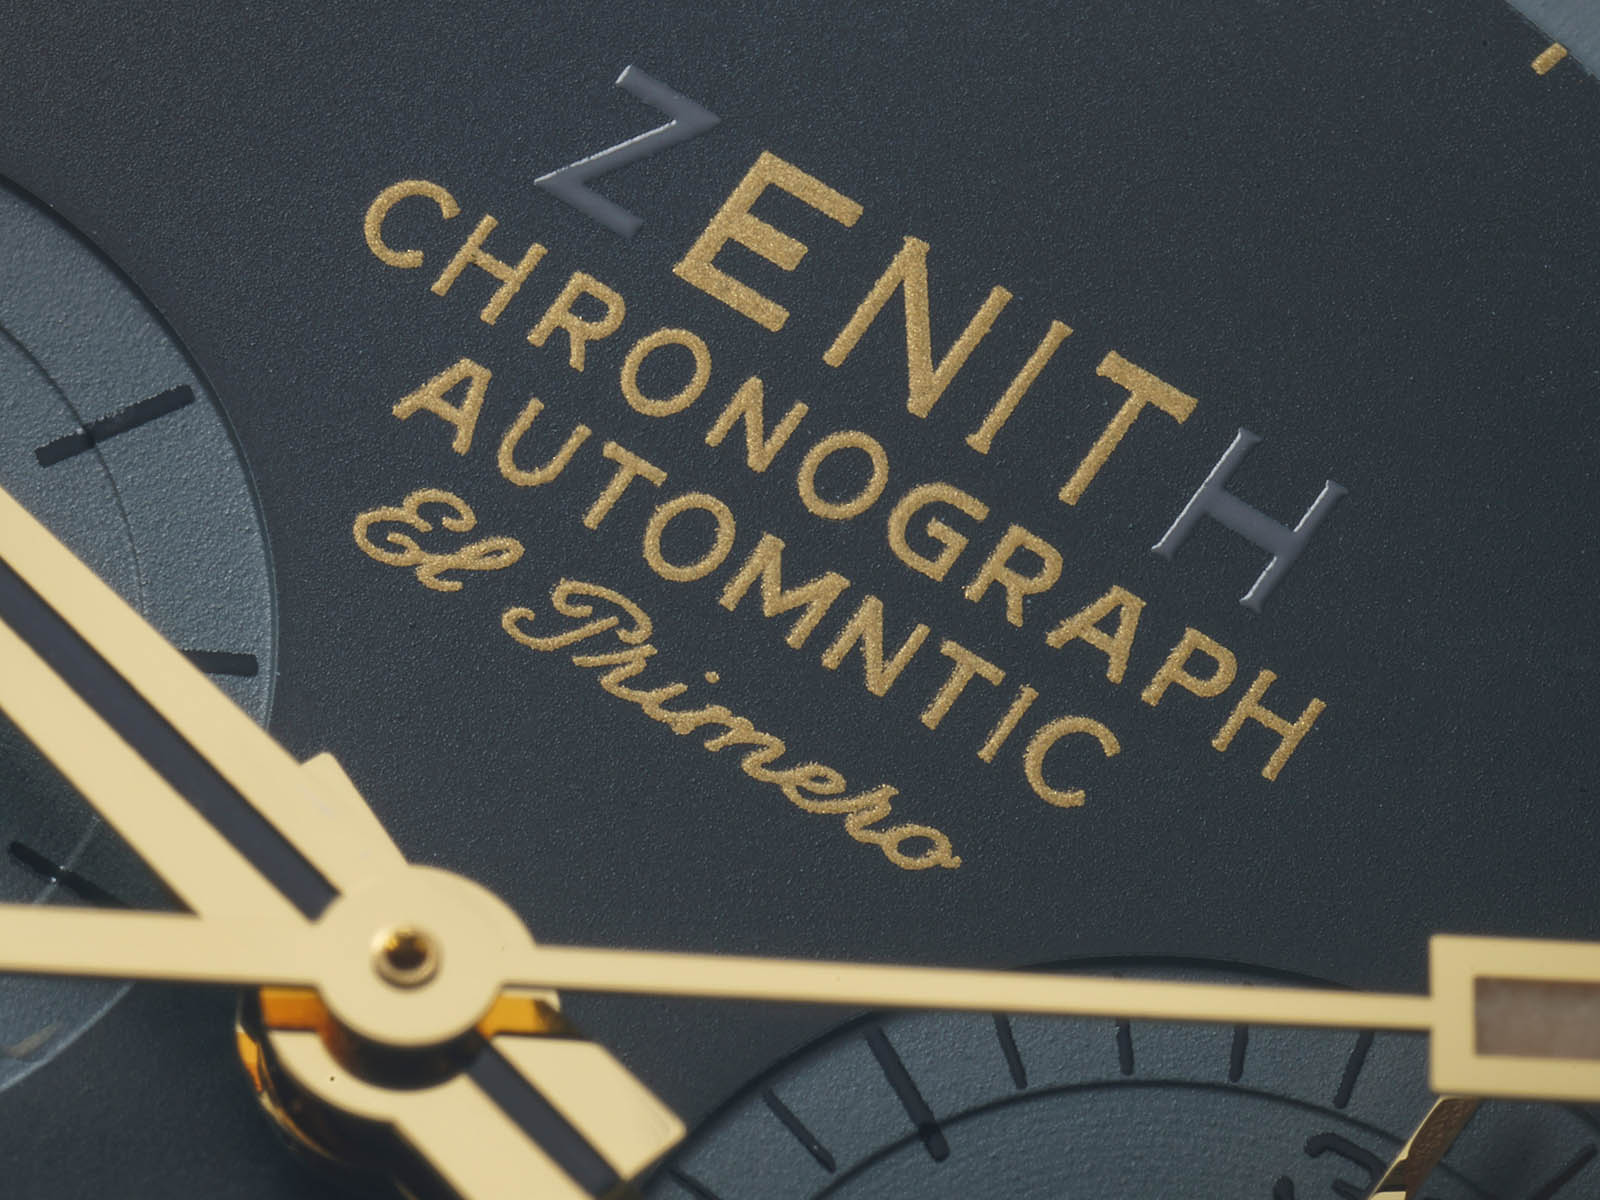 03-l384-0-400-20-m384-zenith-chronomaster-revival-lupin-the-third-unique-piece-2.jpg